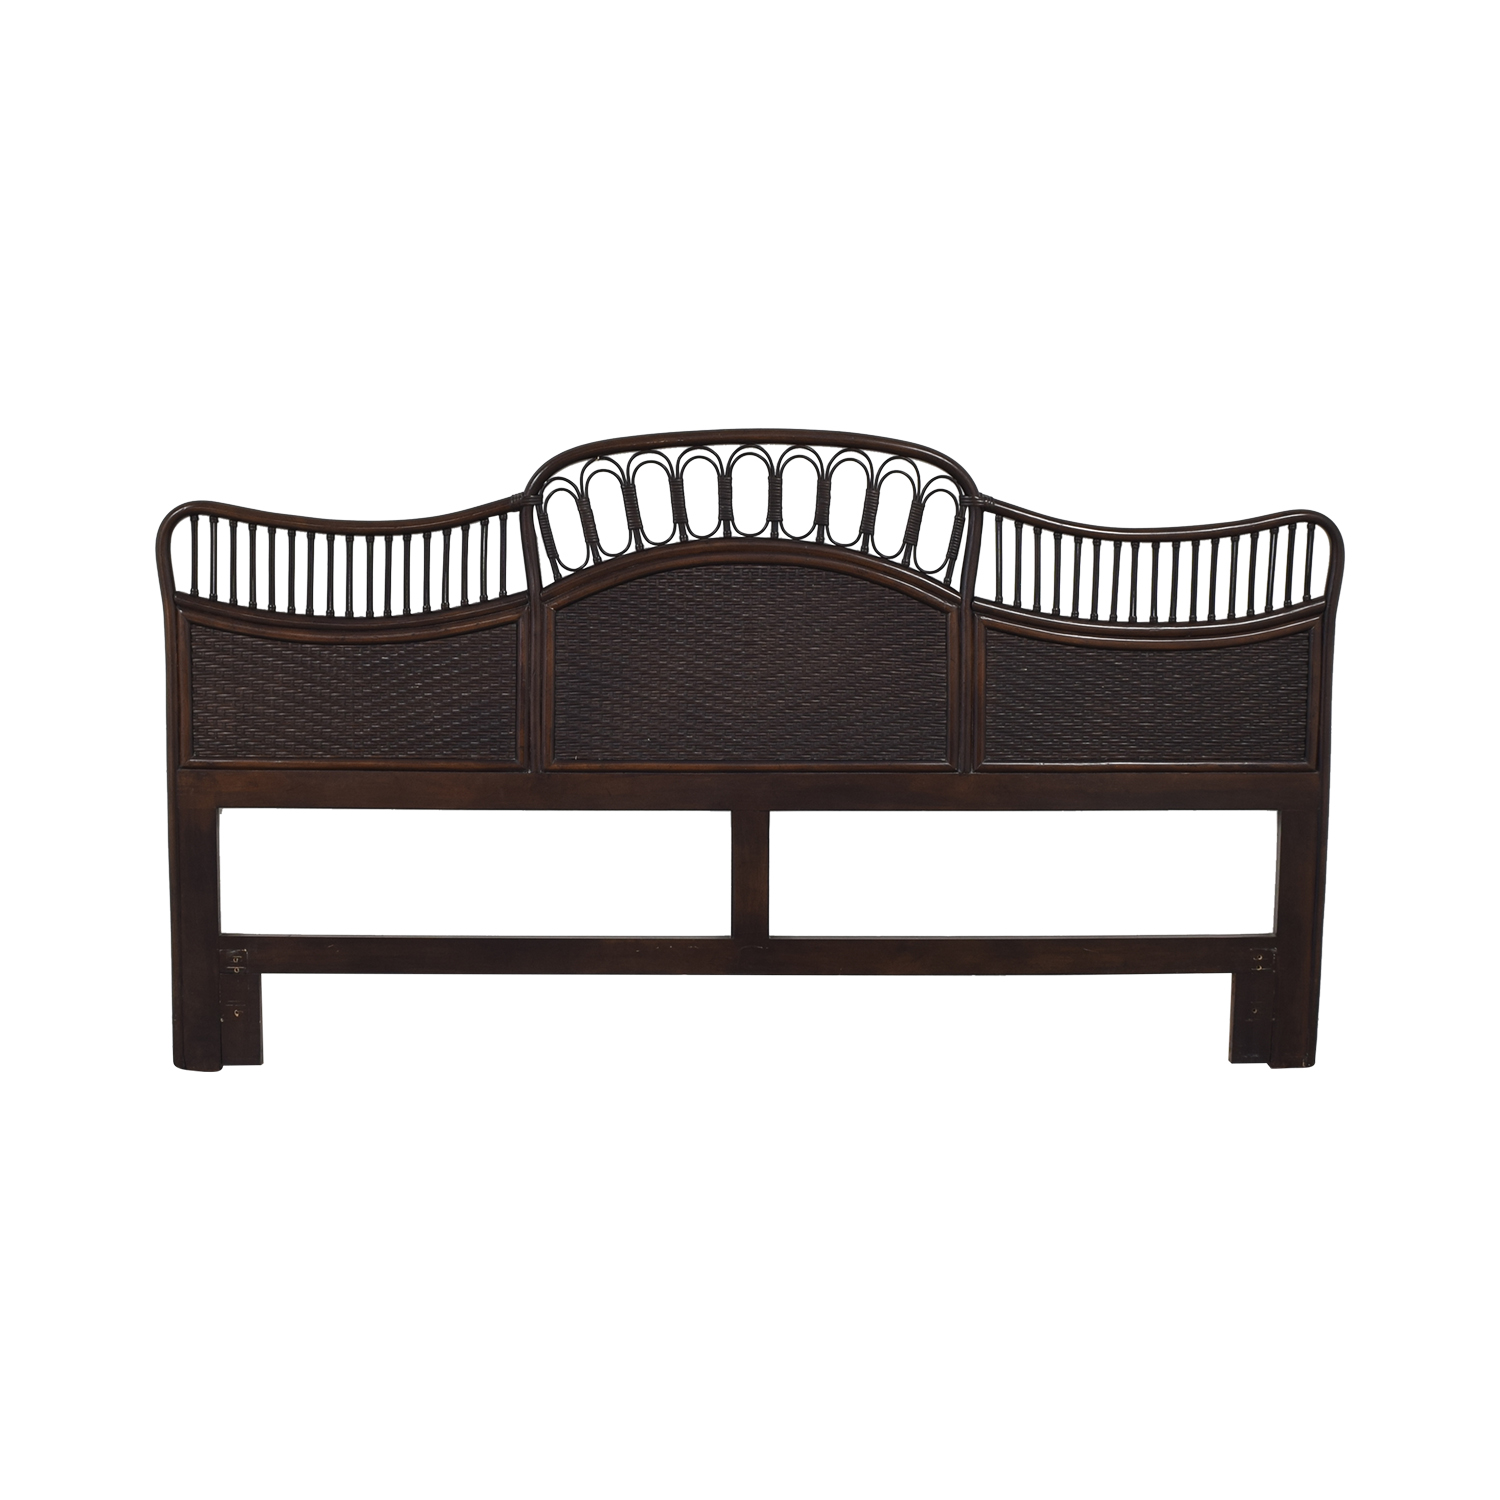 buy Ficks Reed Ficks Reed Rattan King Headboard online